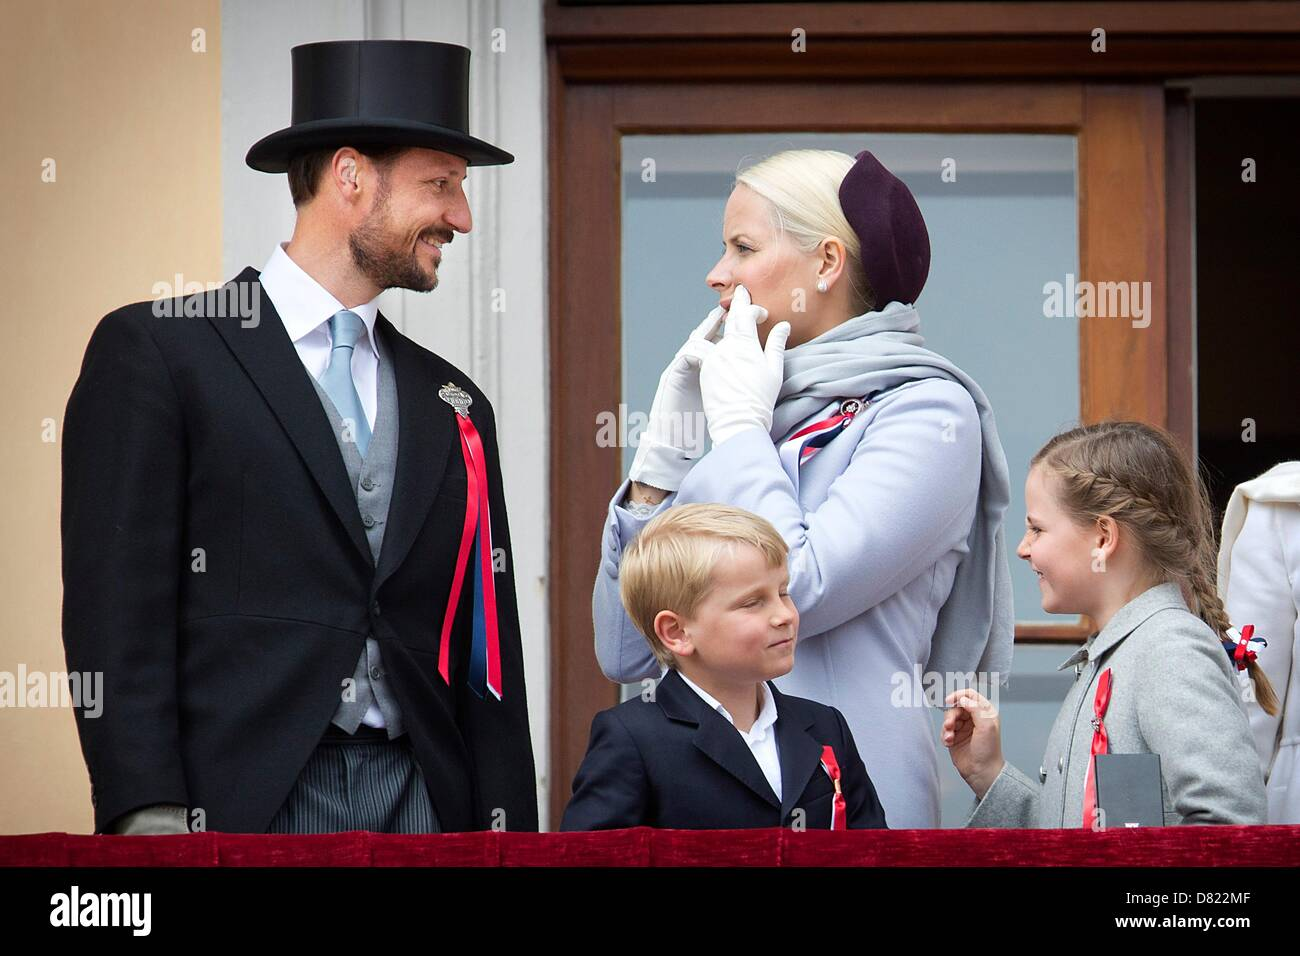 0db0944f Crown Prince Haakon, Crown Princess Mette-Marit, their children Prince  Sverre Magnus and Princess Ingrid Alexandra attend the National Day  celebrations at ...